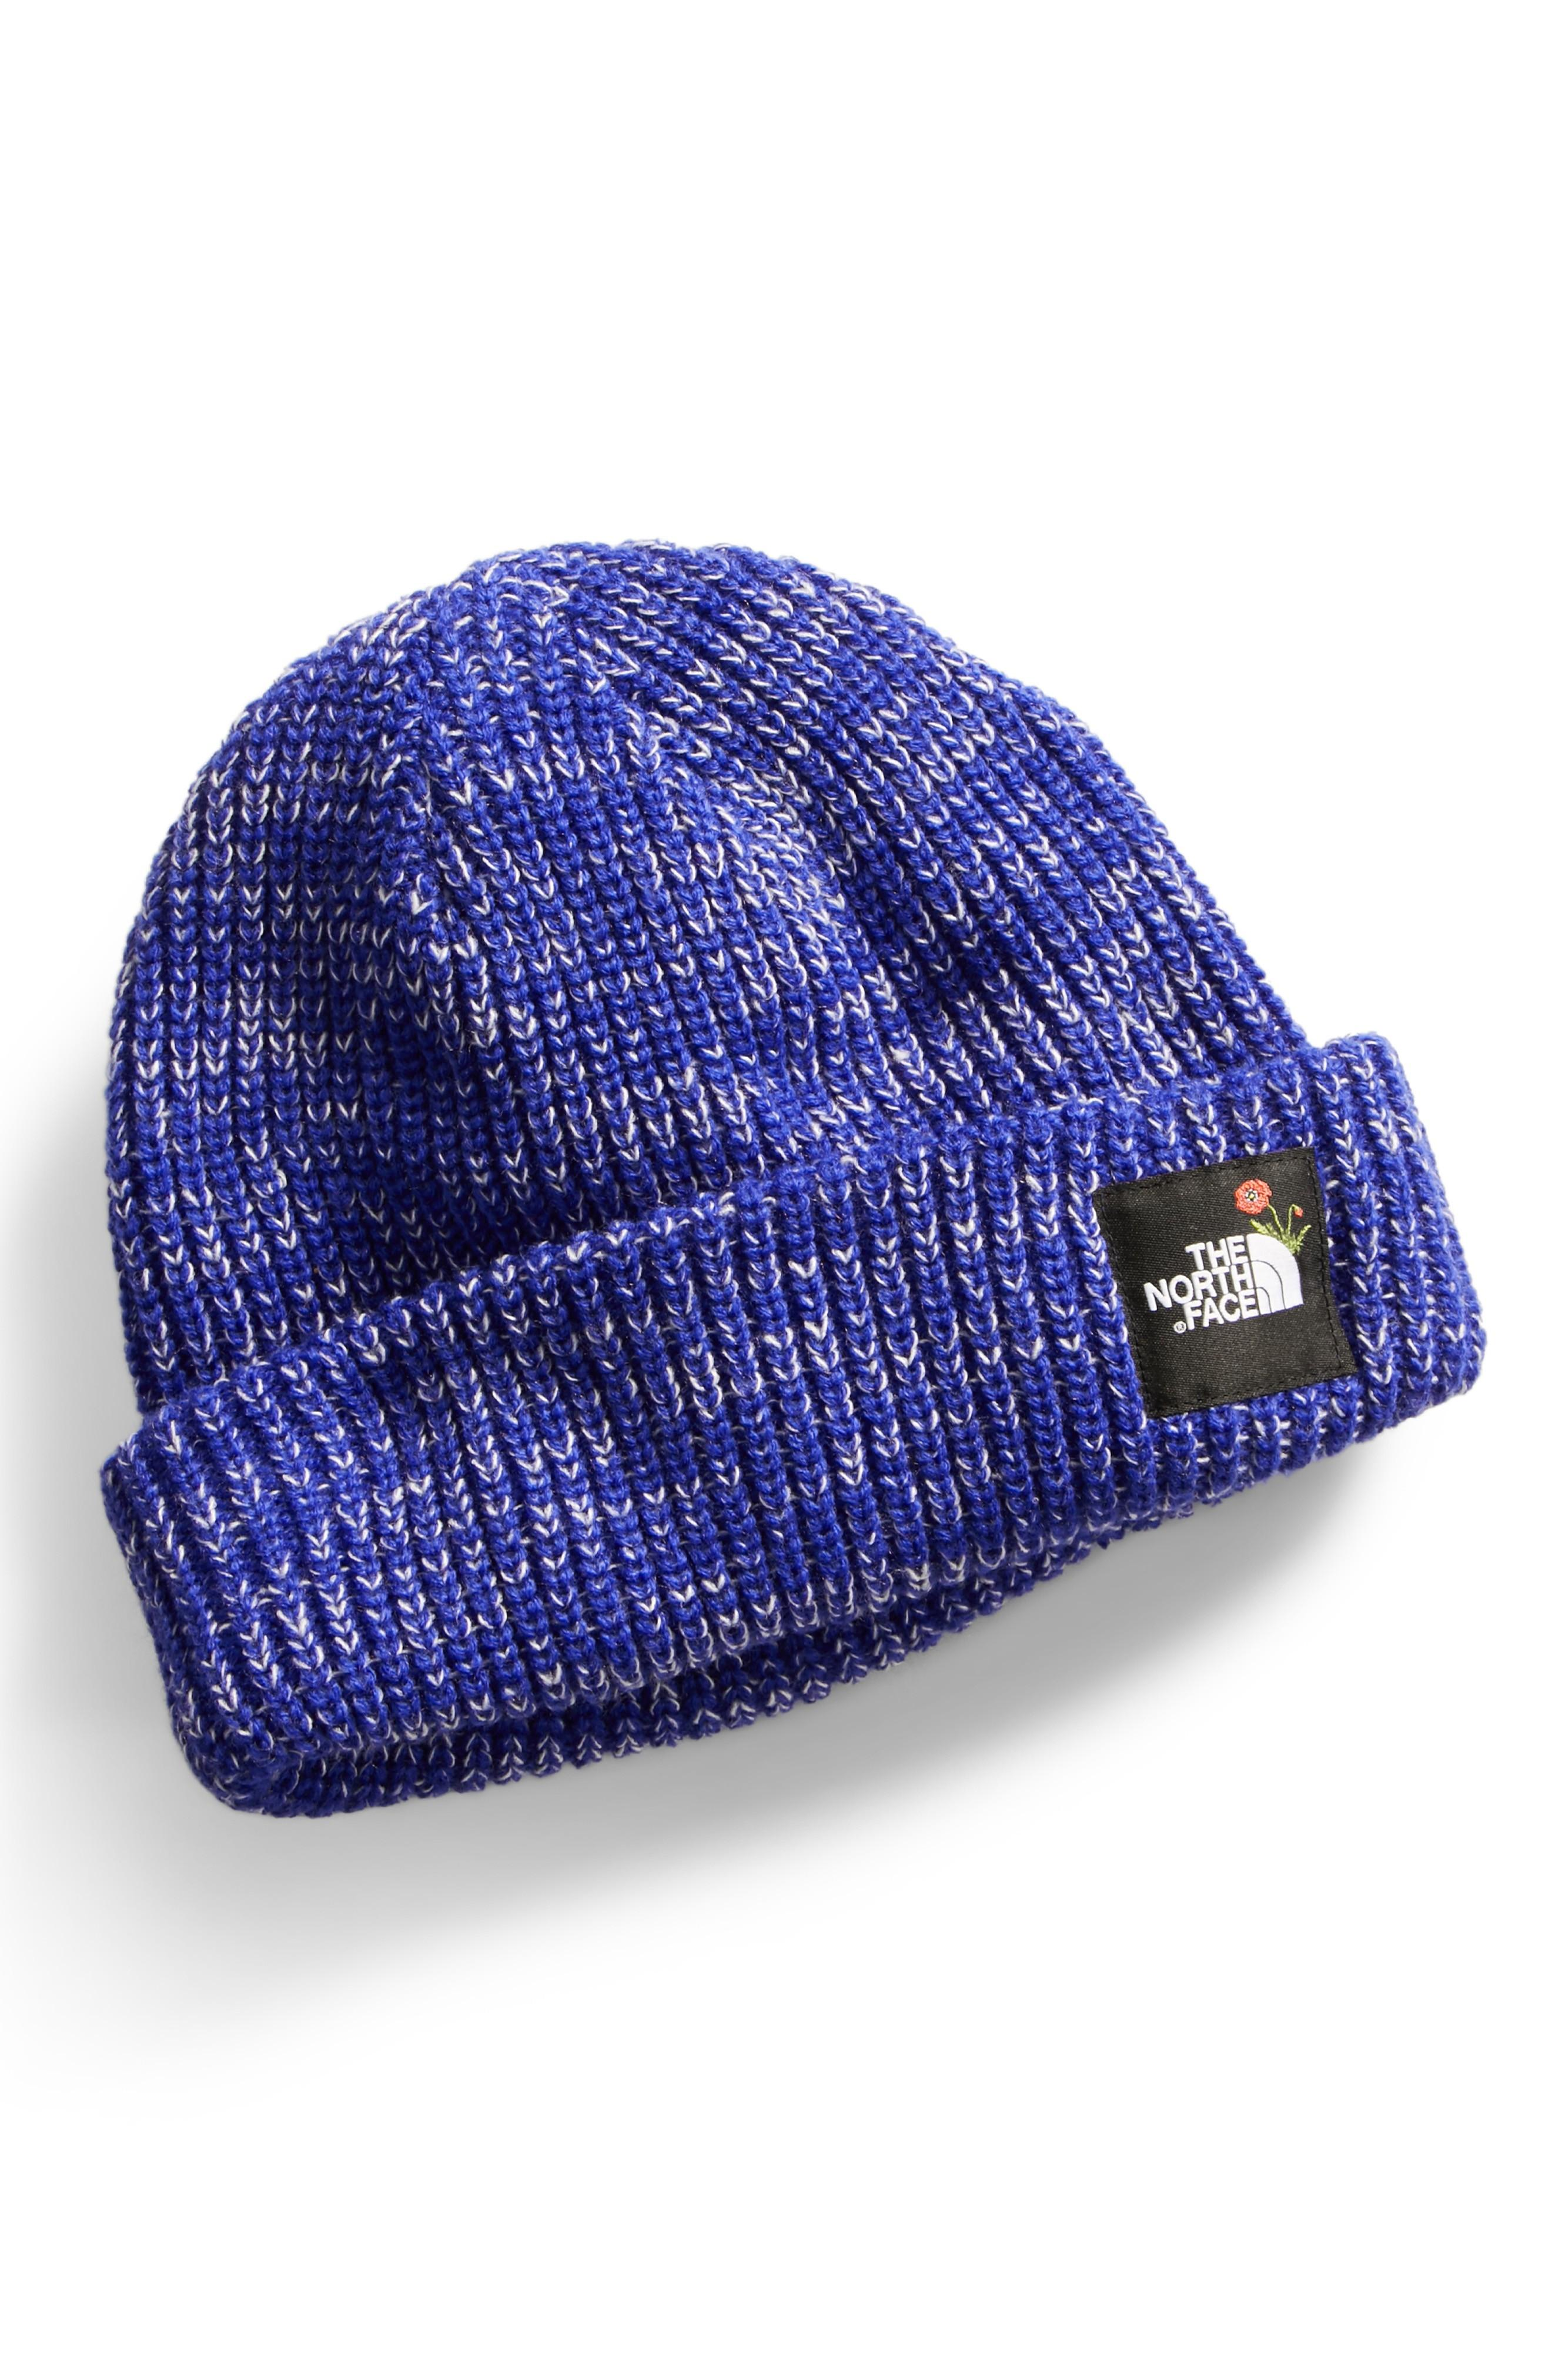 a1a2740f9e66c0 The North Face Salty Dog Beanie - Blue In Lapis Blue Marl | ModeSens